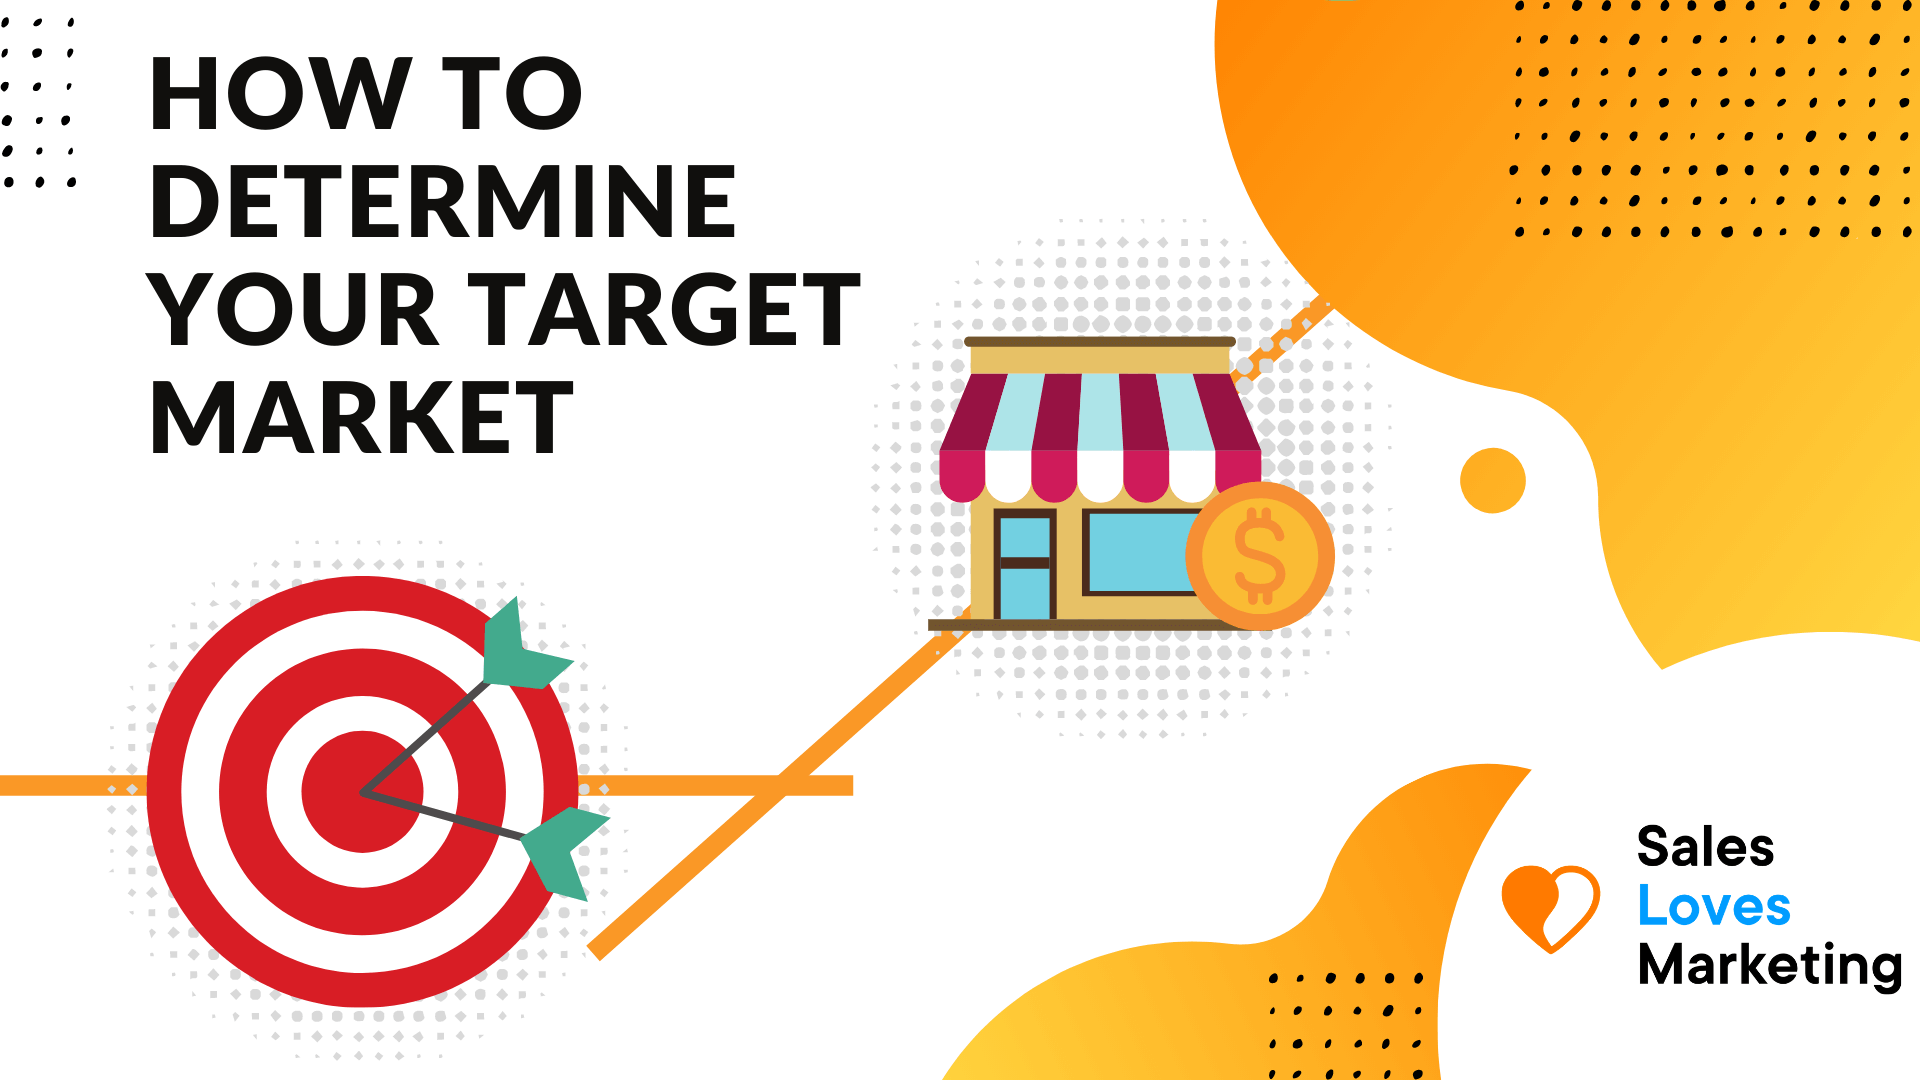 How to Determine Your Target Market For Your Business